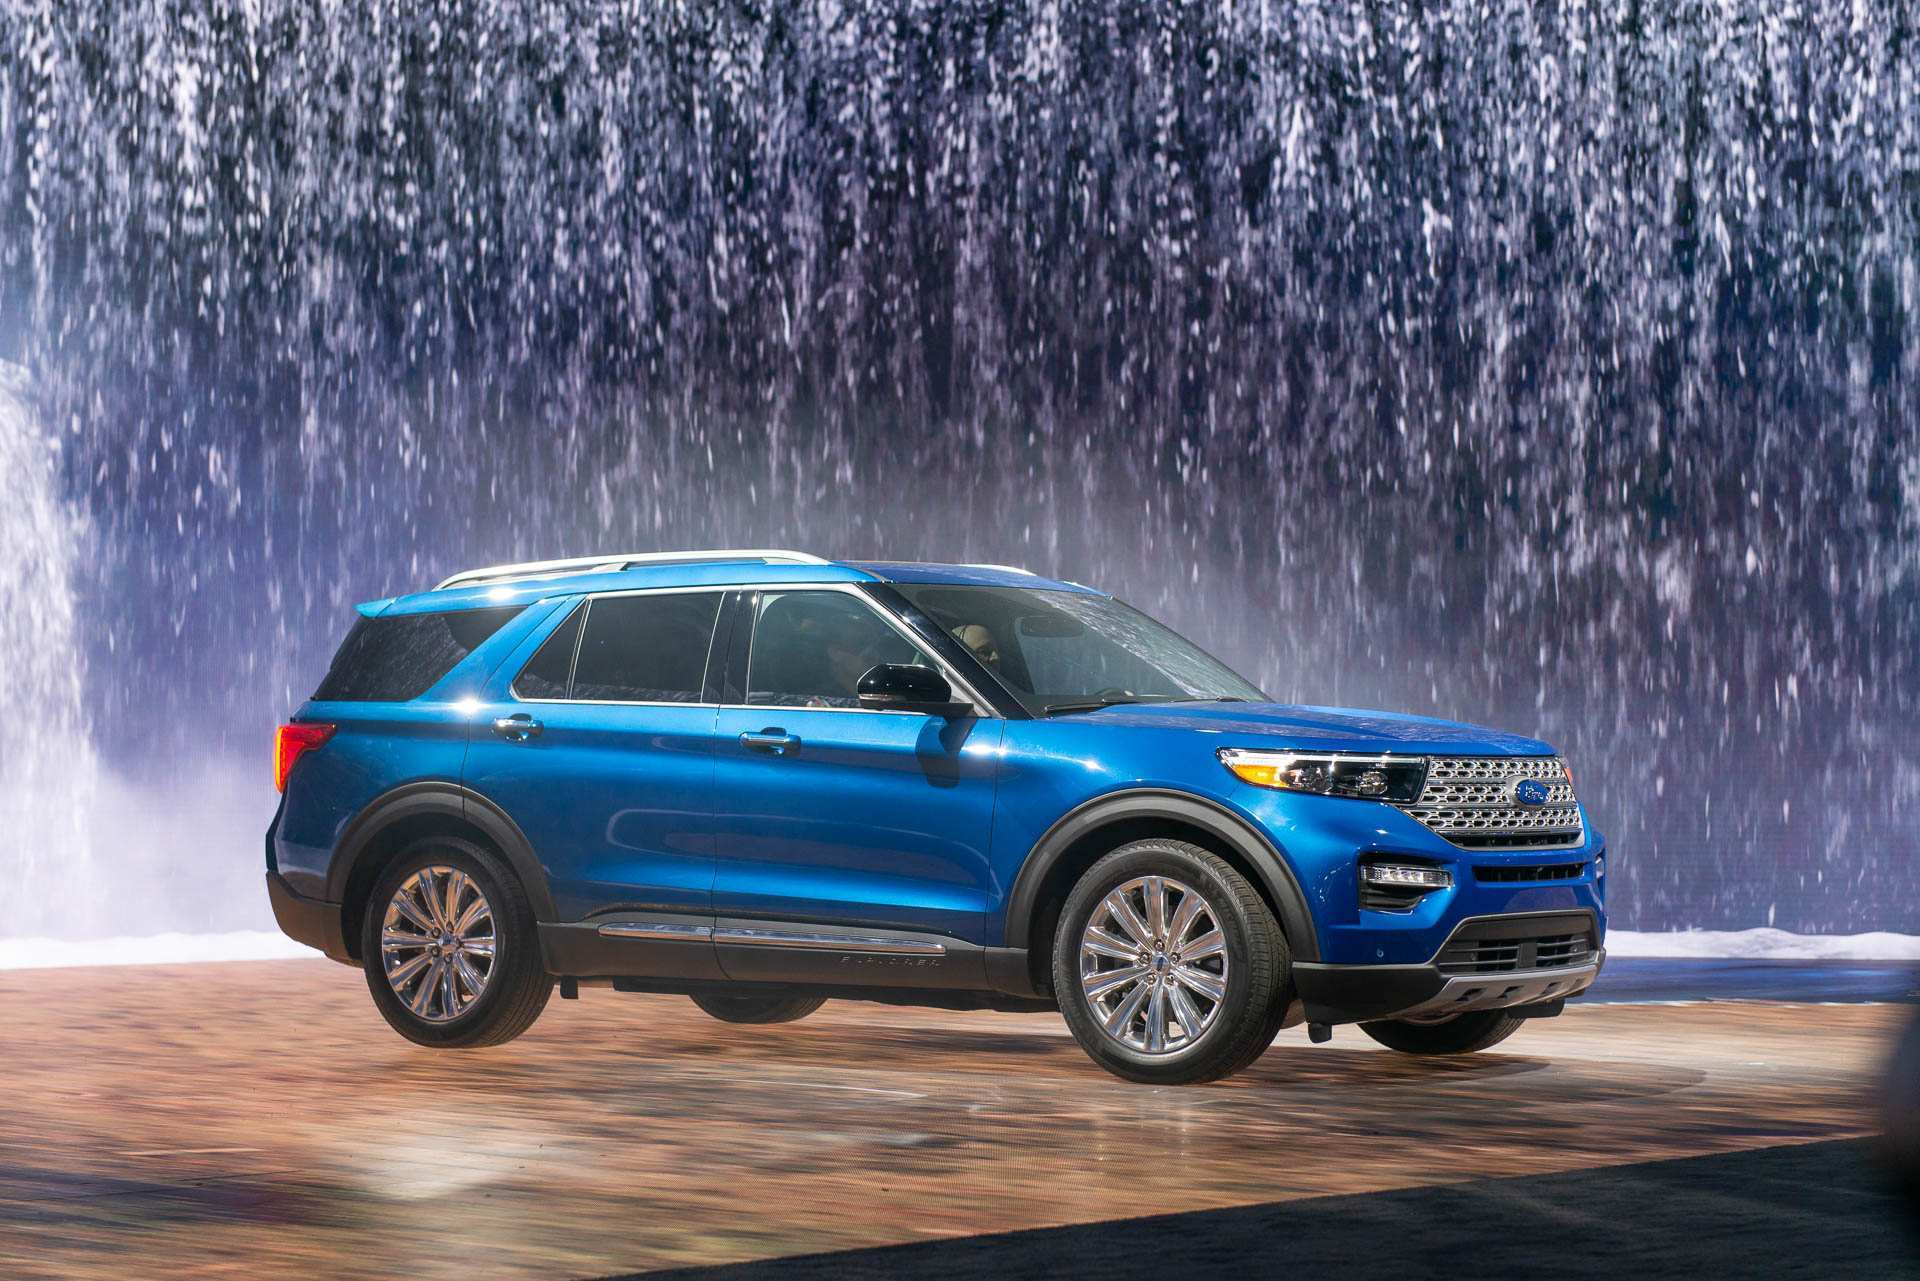 14 All New Ford Hybrid Explorer 2020 Pictures